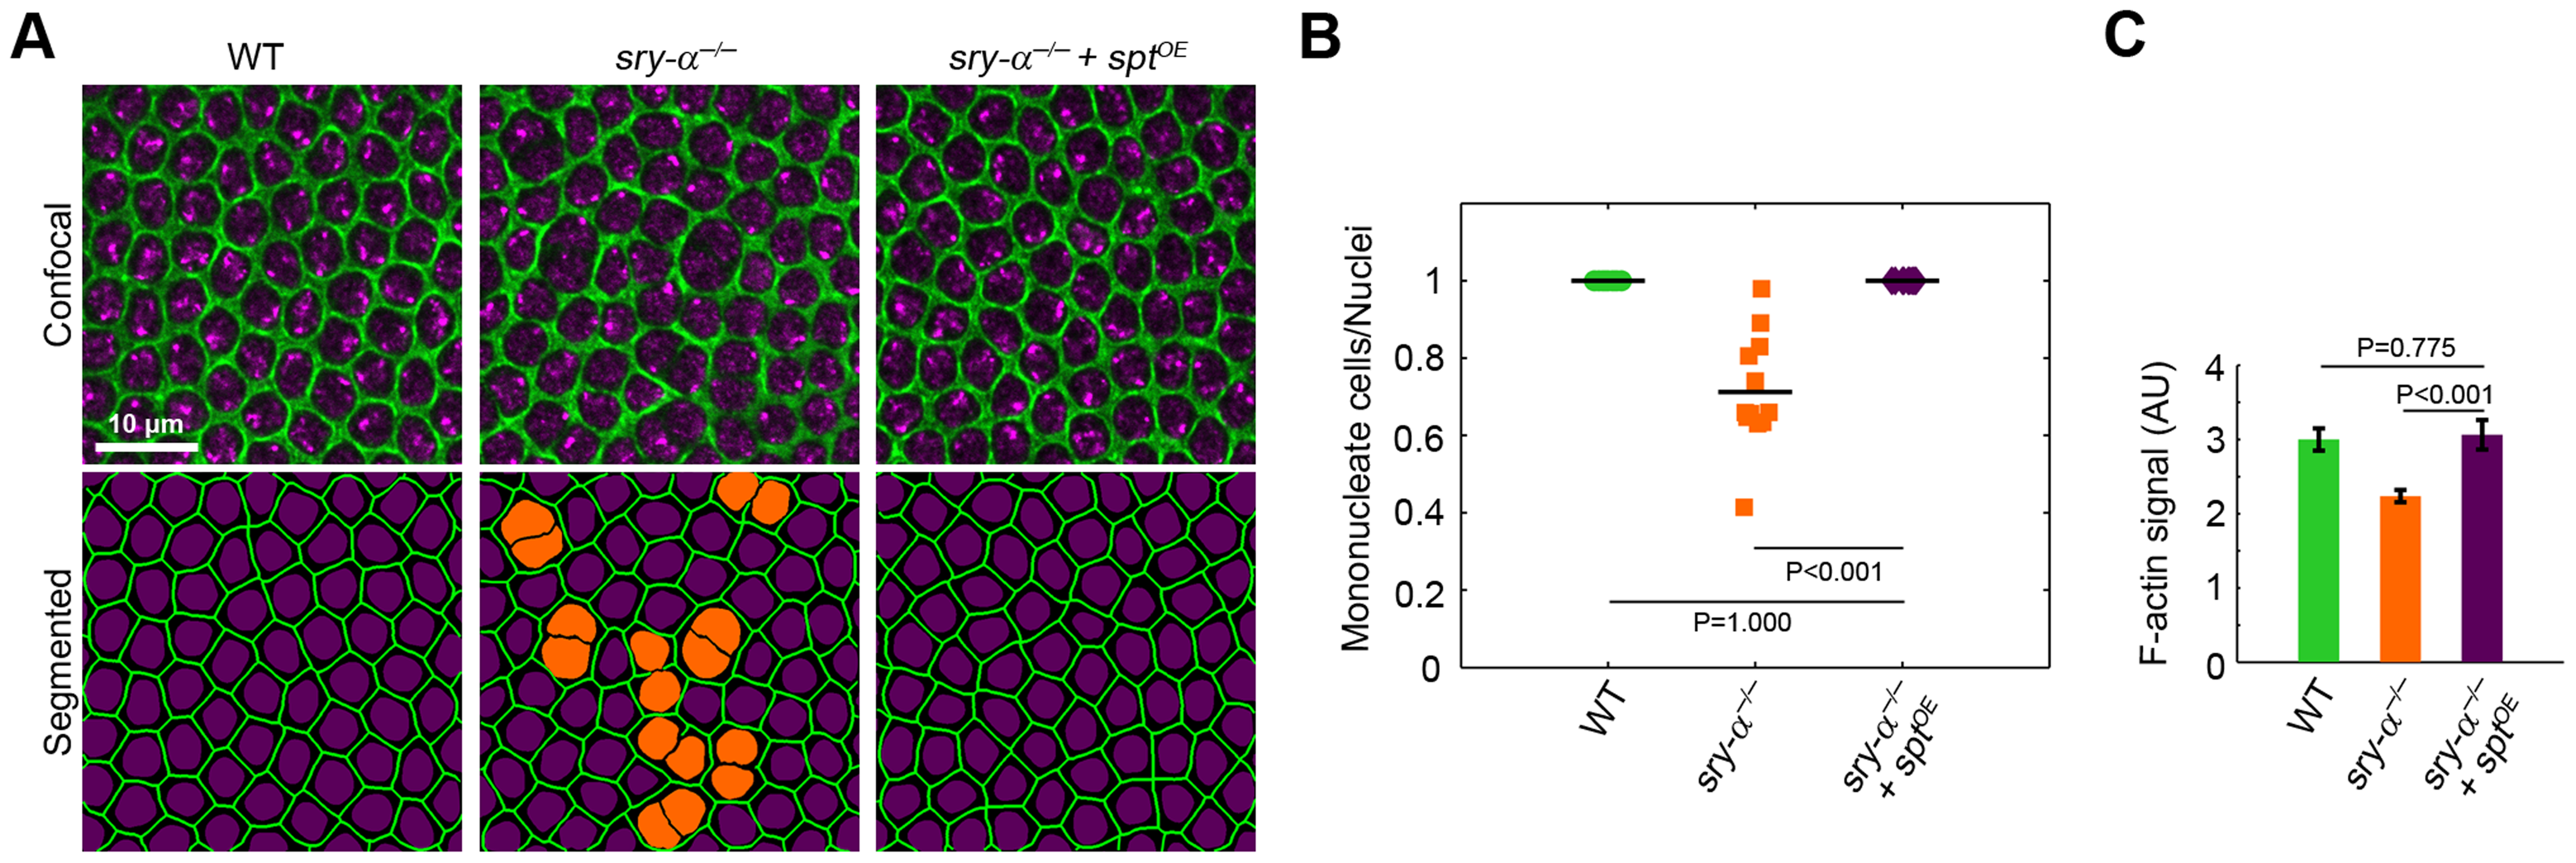 Sry-α and Spt share redundant function during cellularization.